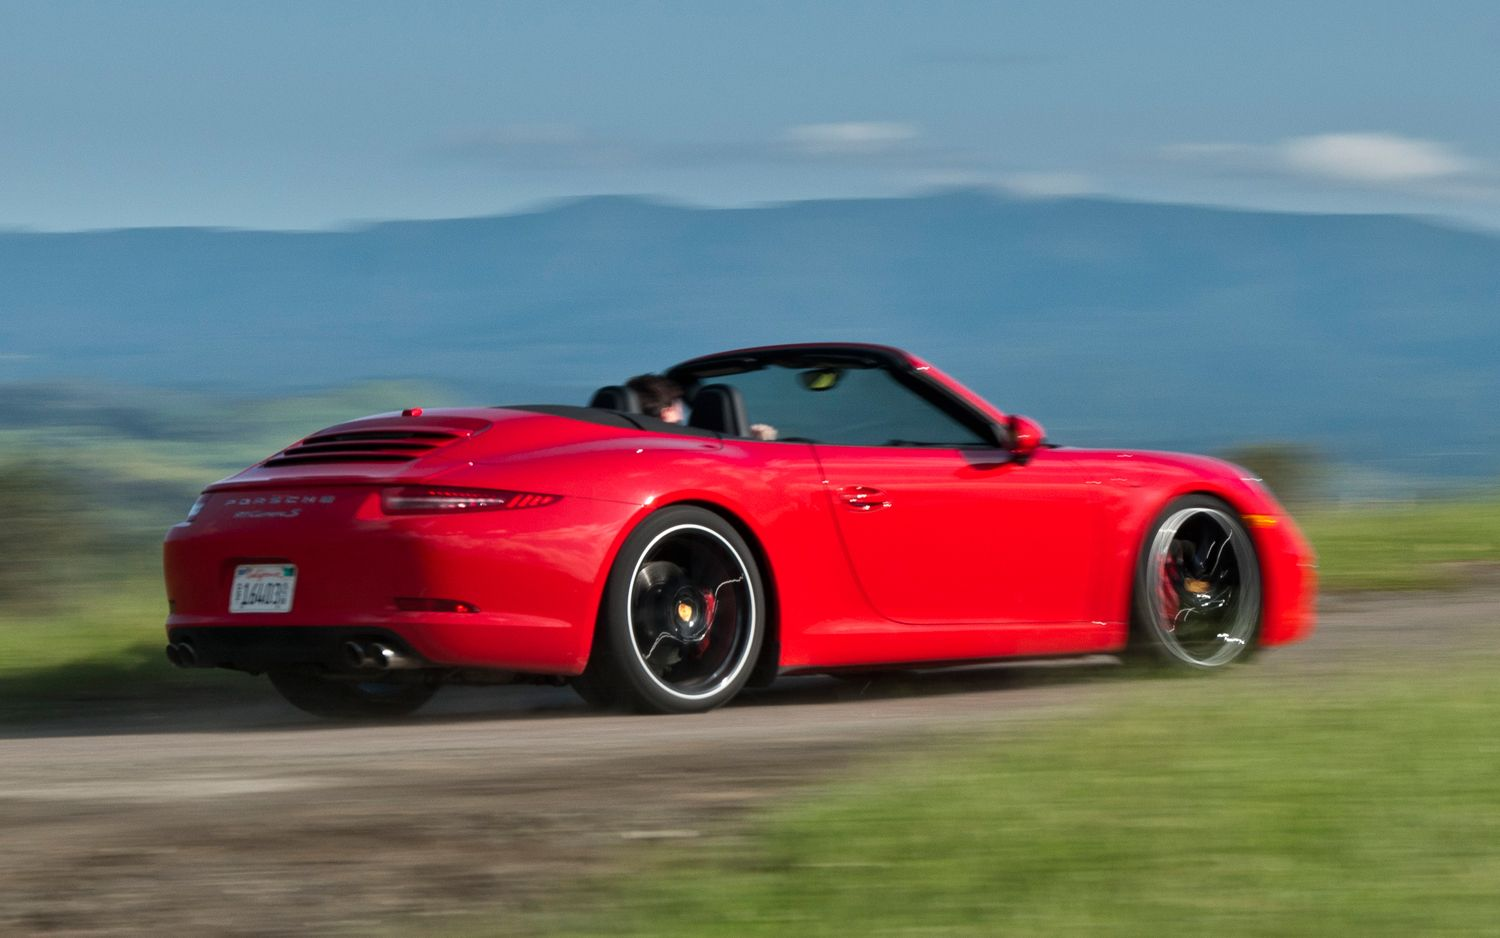 2019 Porsche 911 Carrera S Cabriolet photo - 4